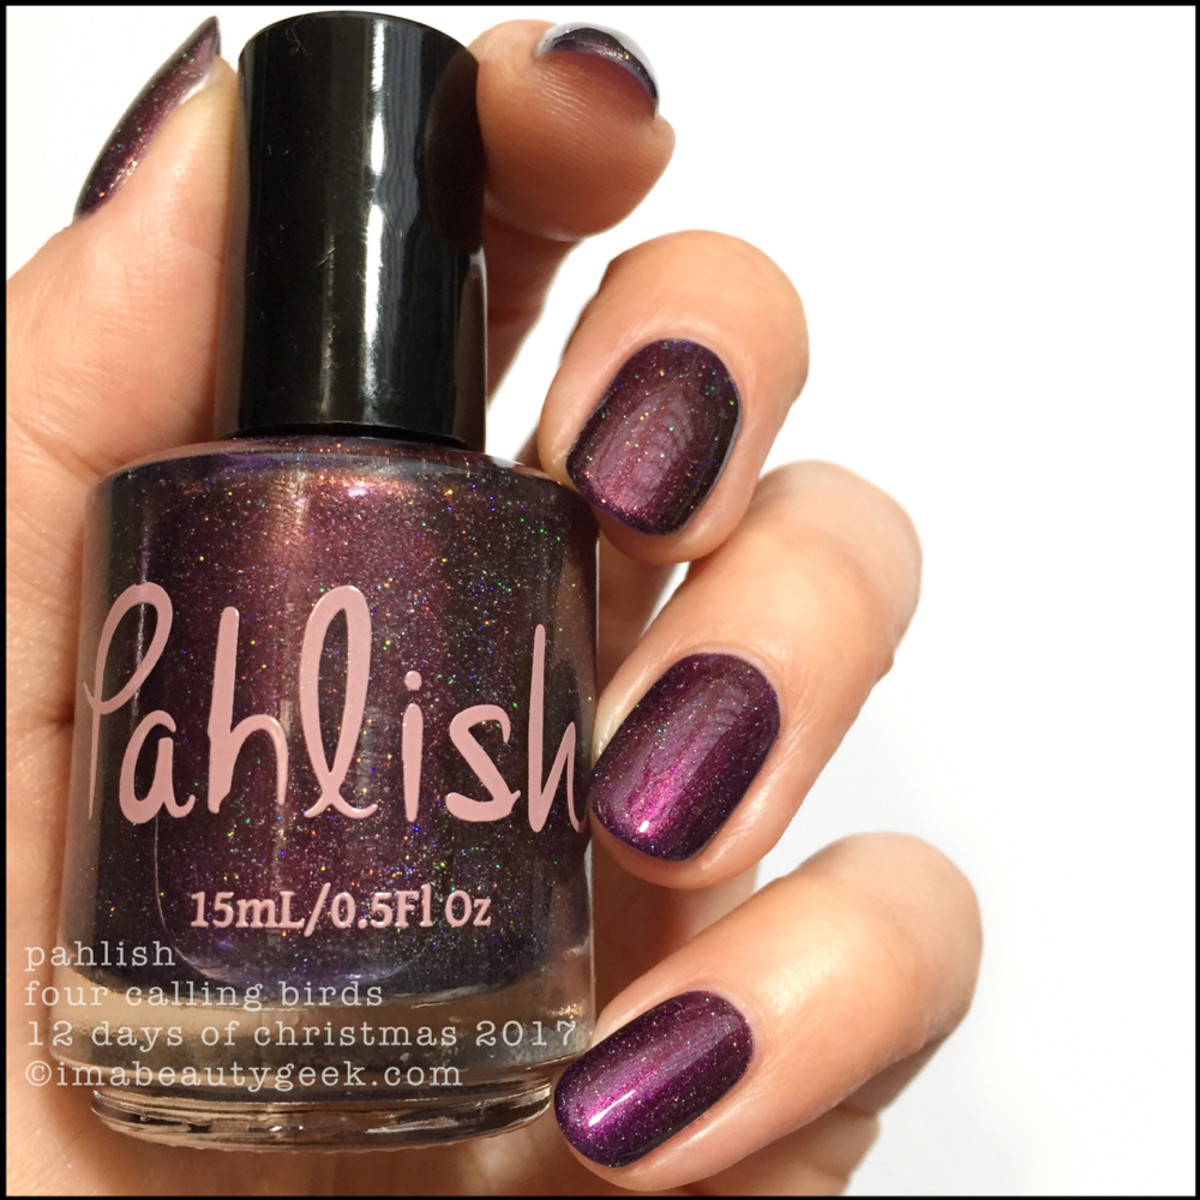 Pahlish Four Calling Birds - Pahlish 12 Days of Christmas 2017 1